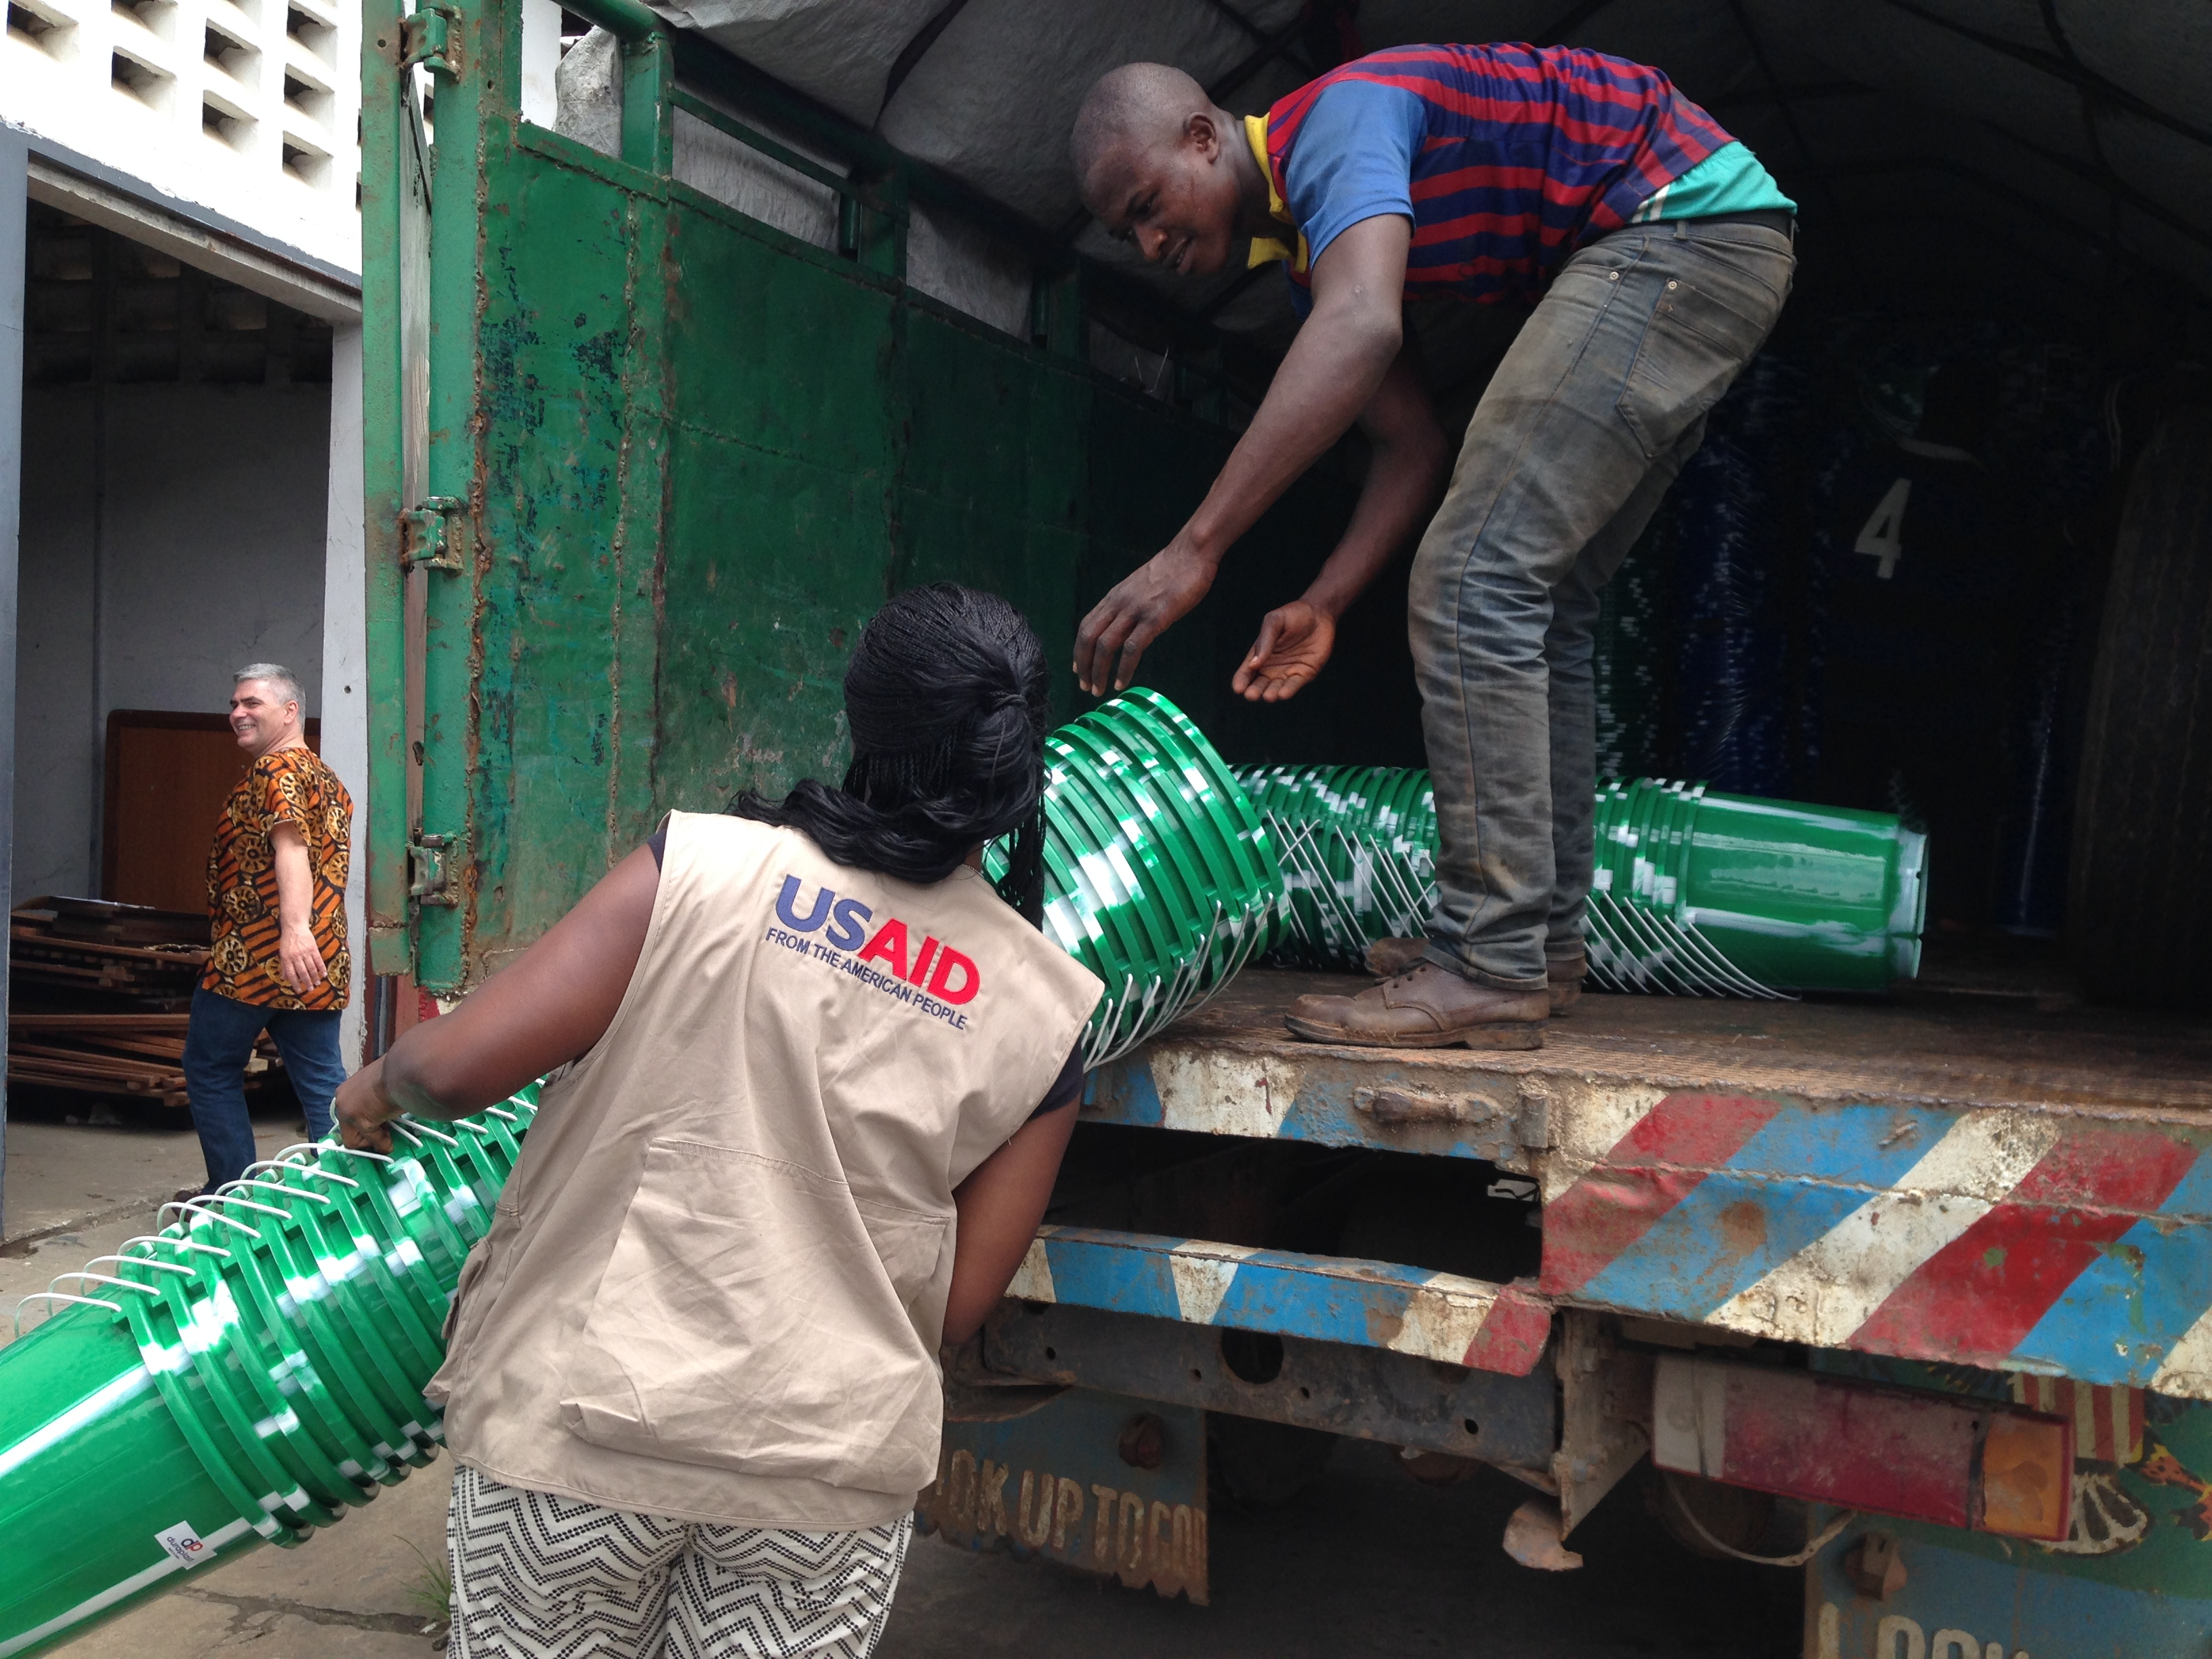 USAID hygiene items for Ebola response